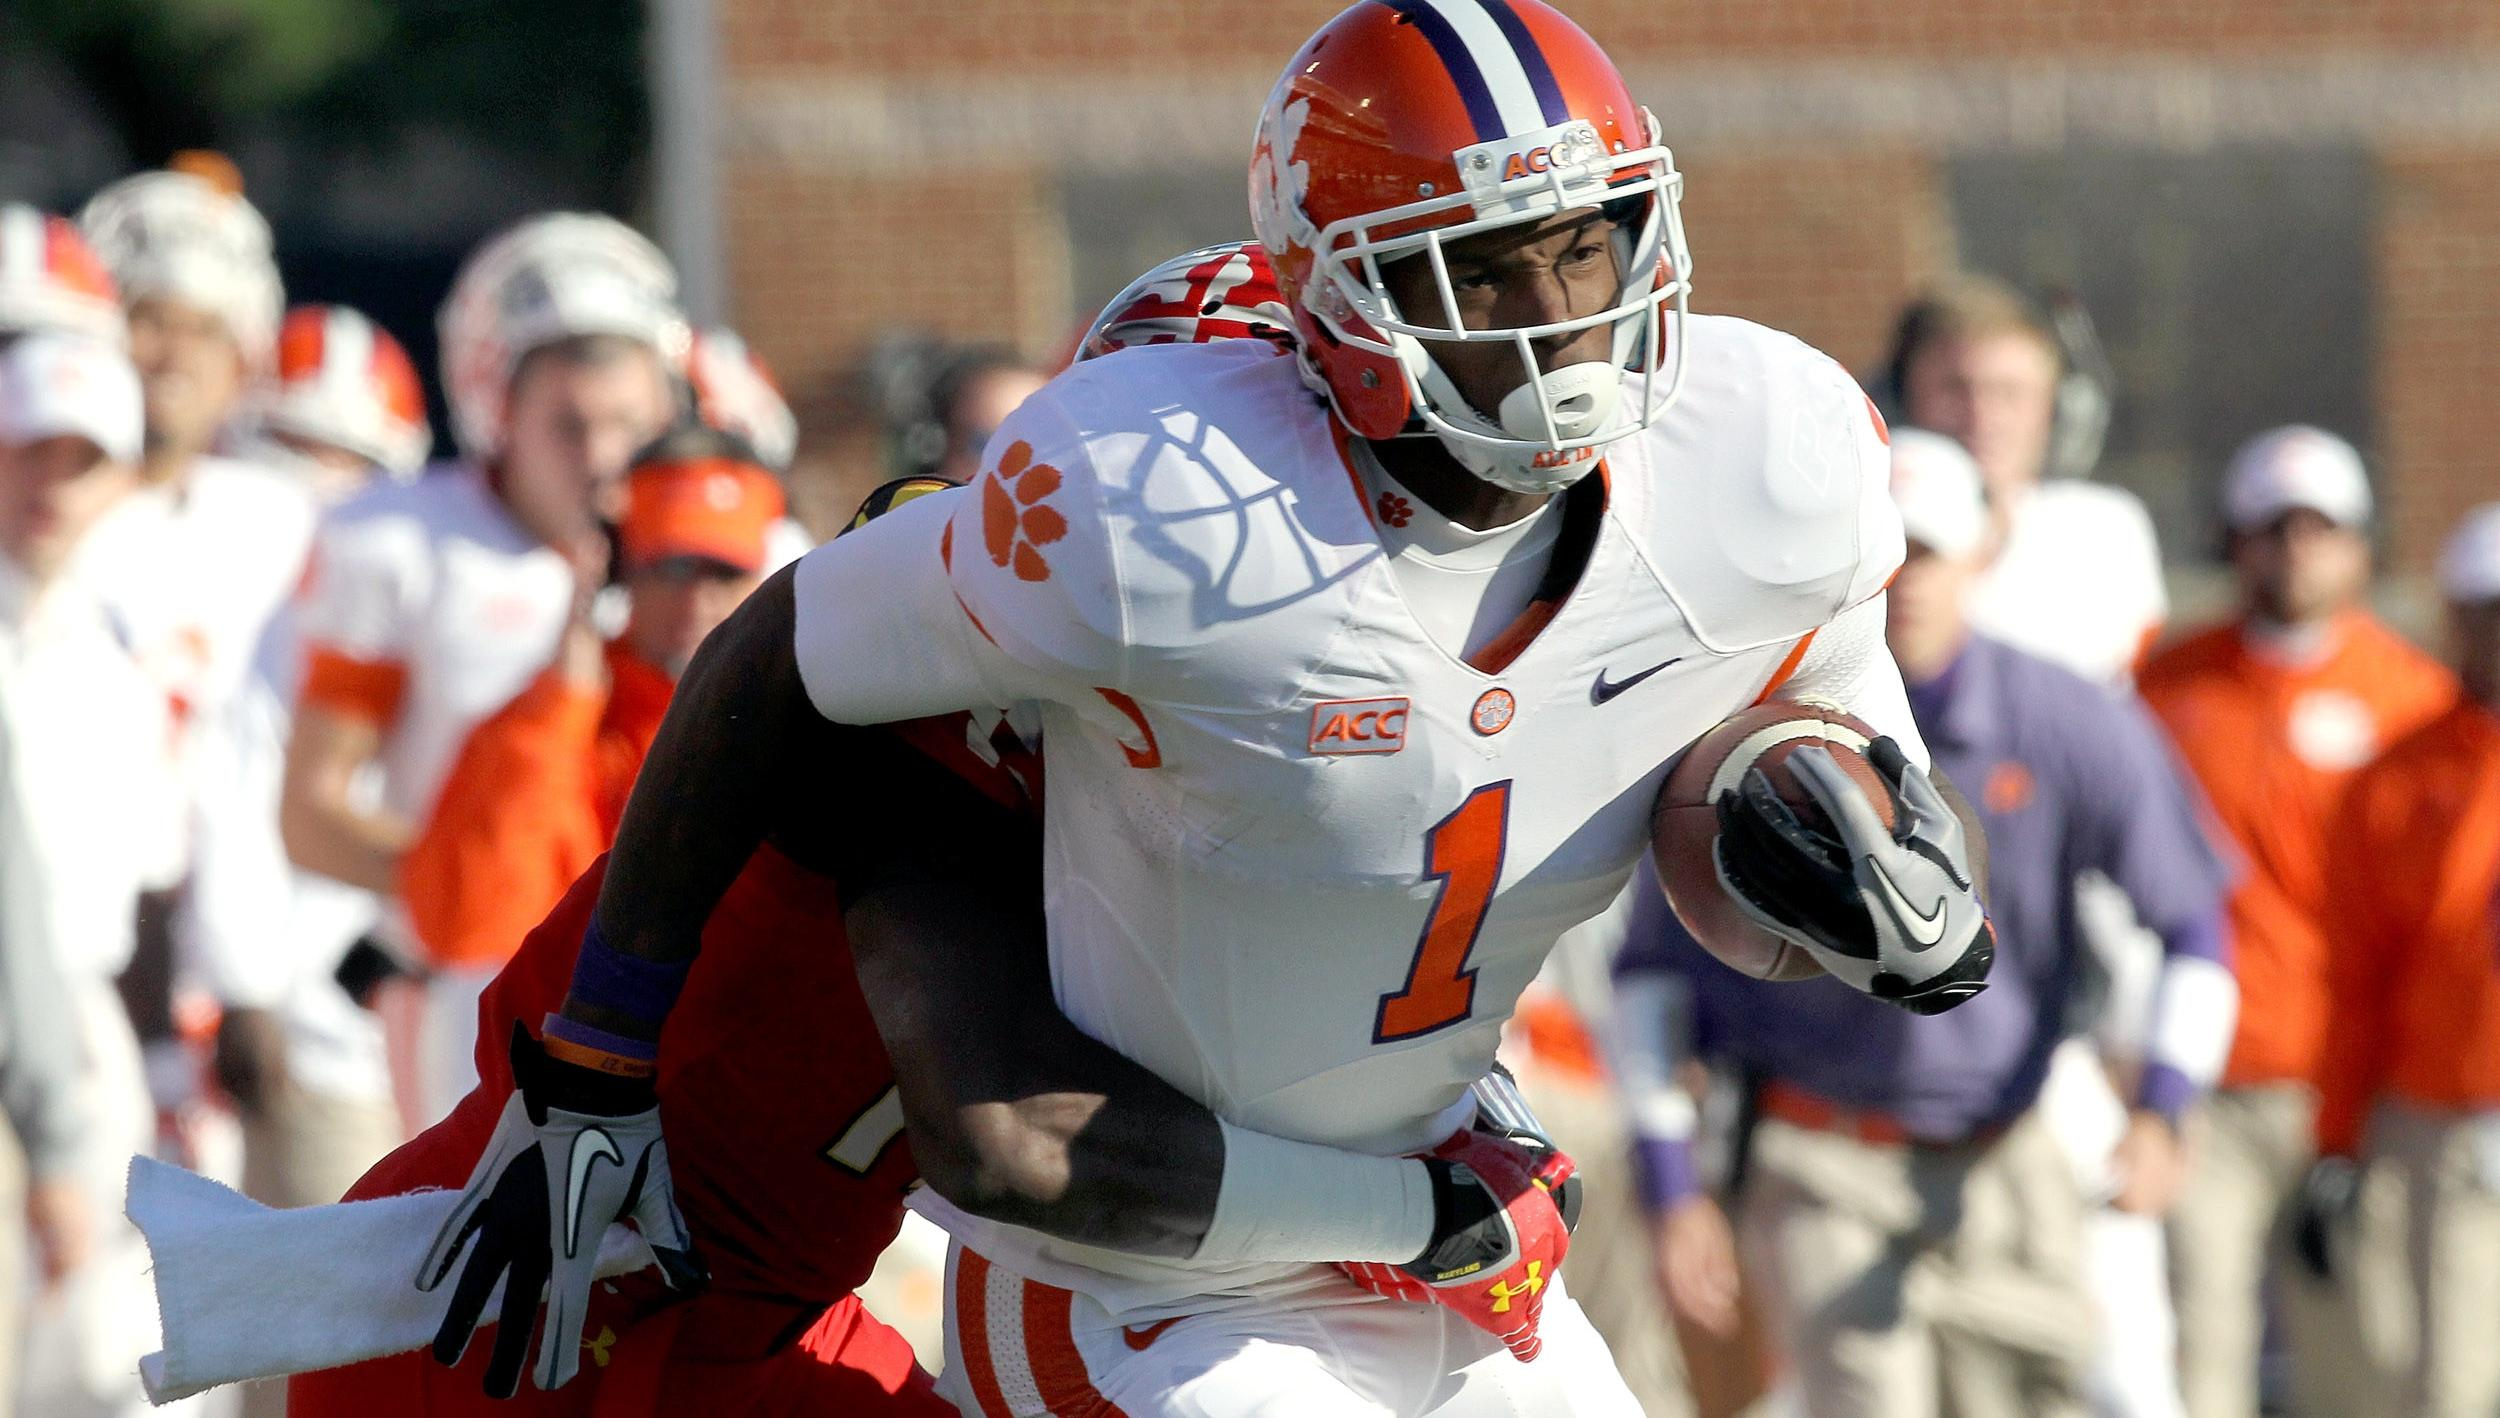 Clemson vs. Maryland Replay Now Available on ClemsonTigers.com